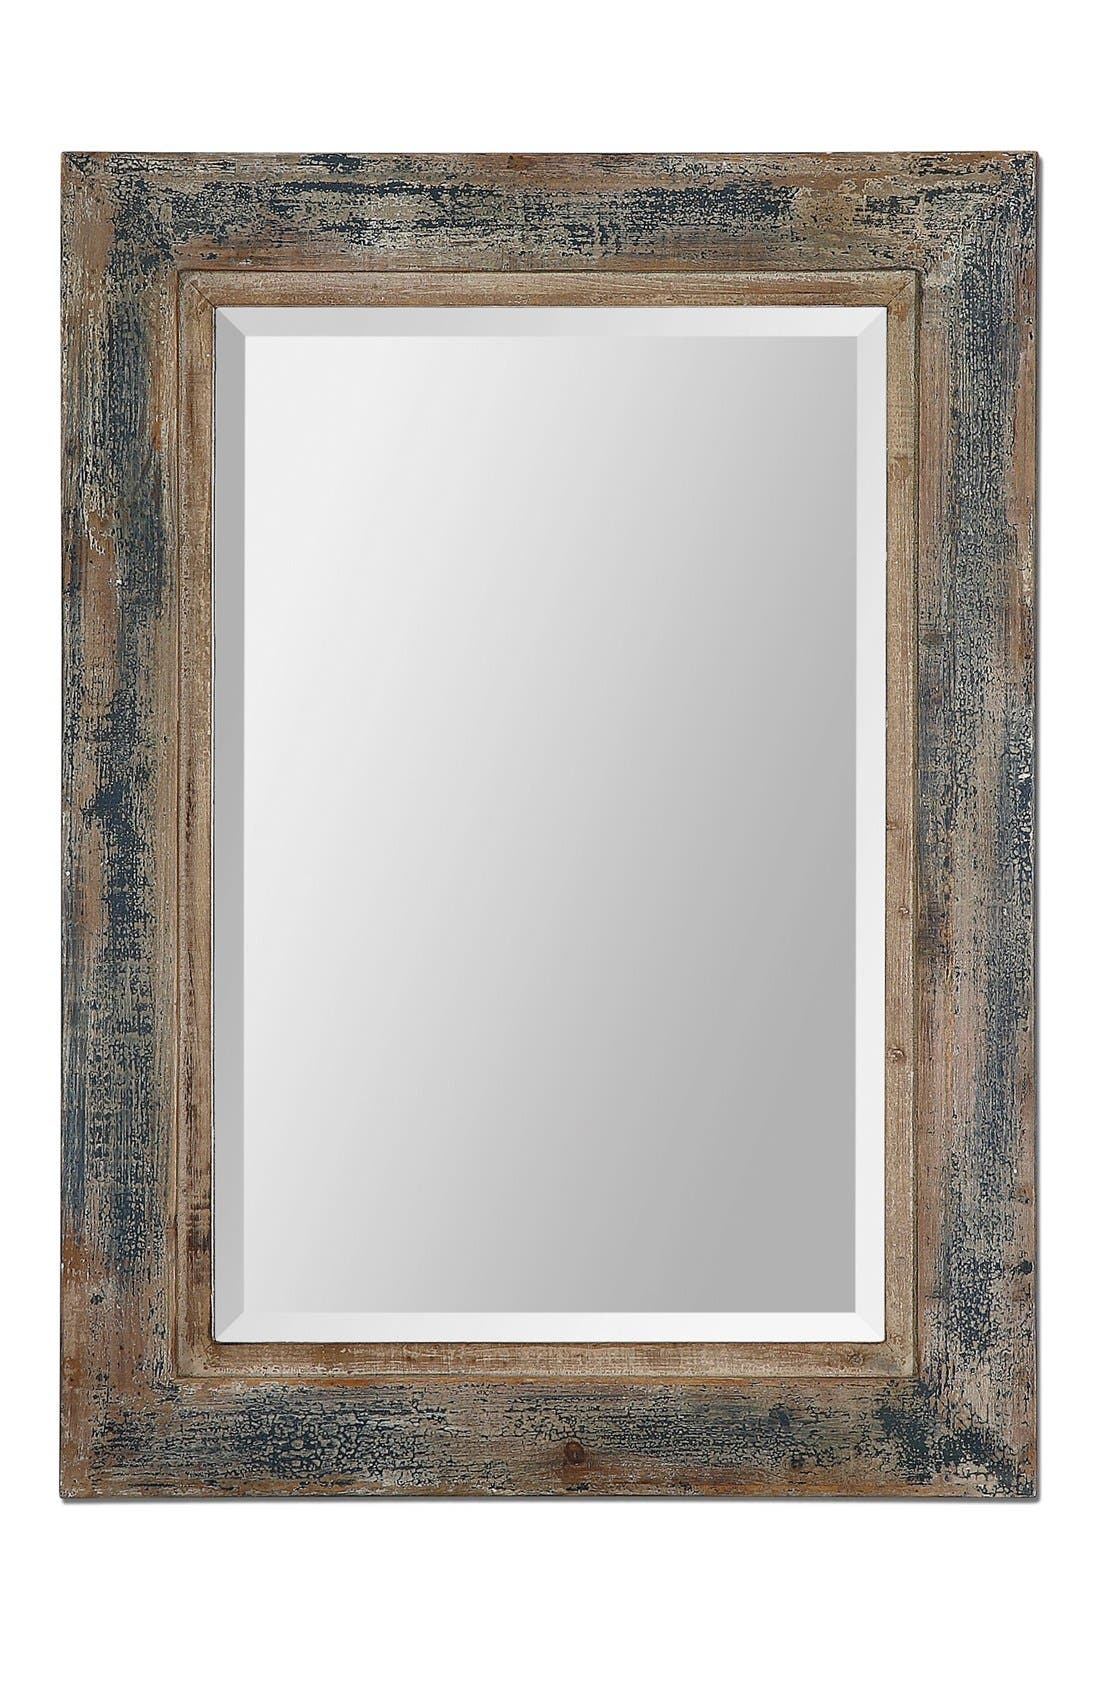 Uttermost 'Bozeman' Distressed Wooden Mirror